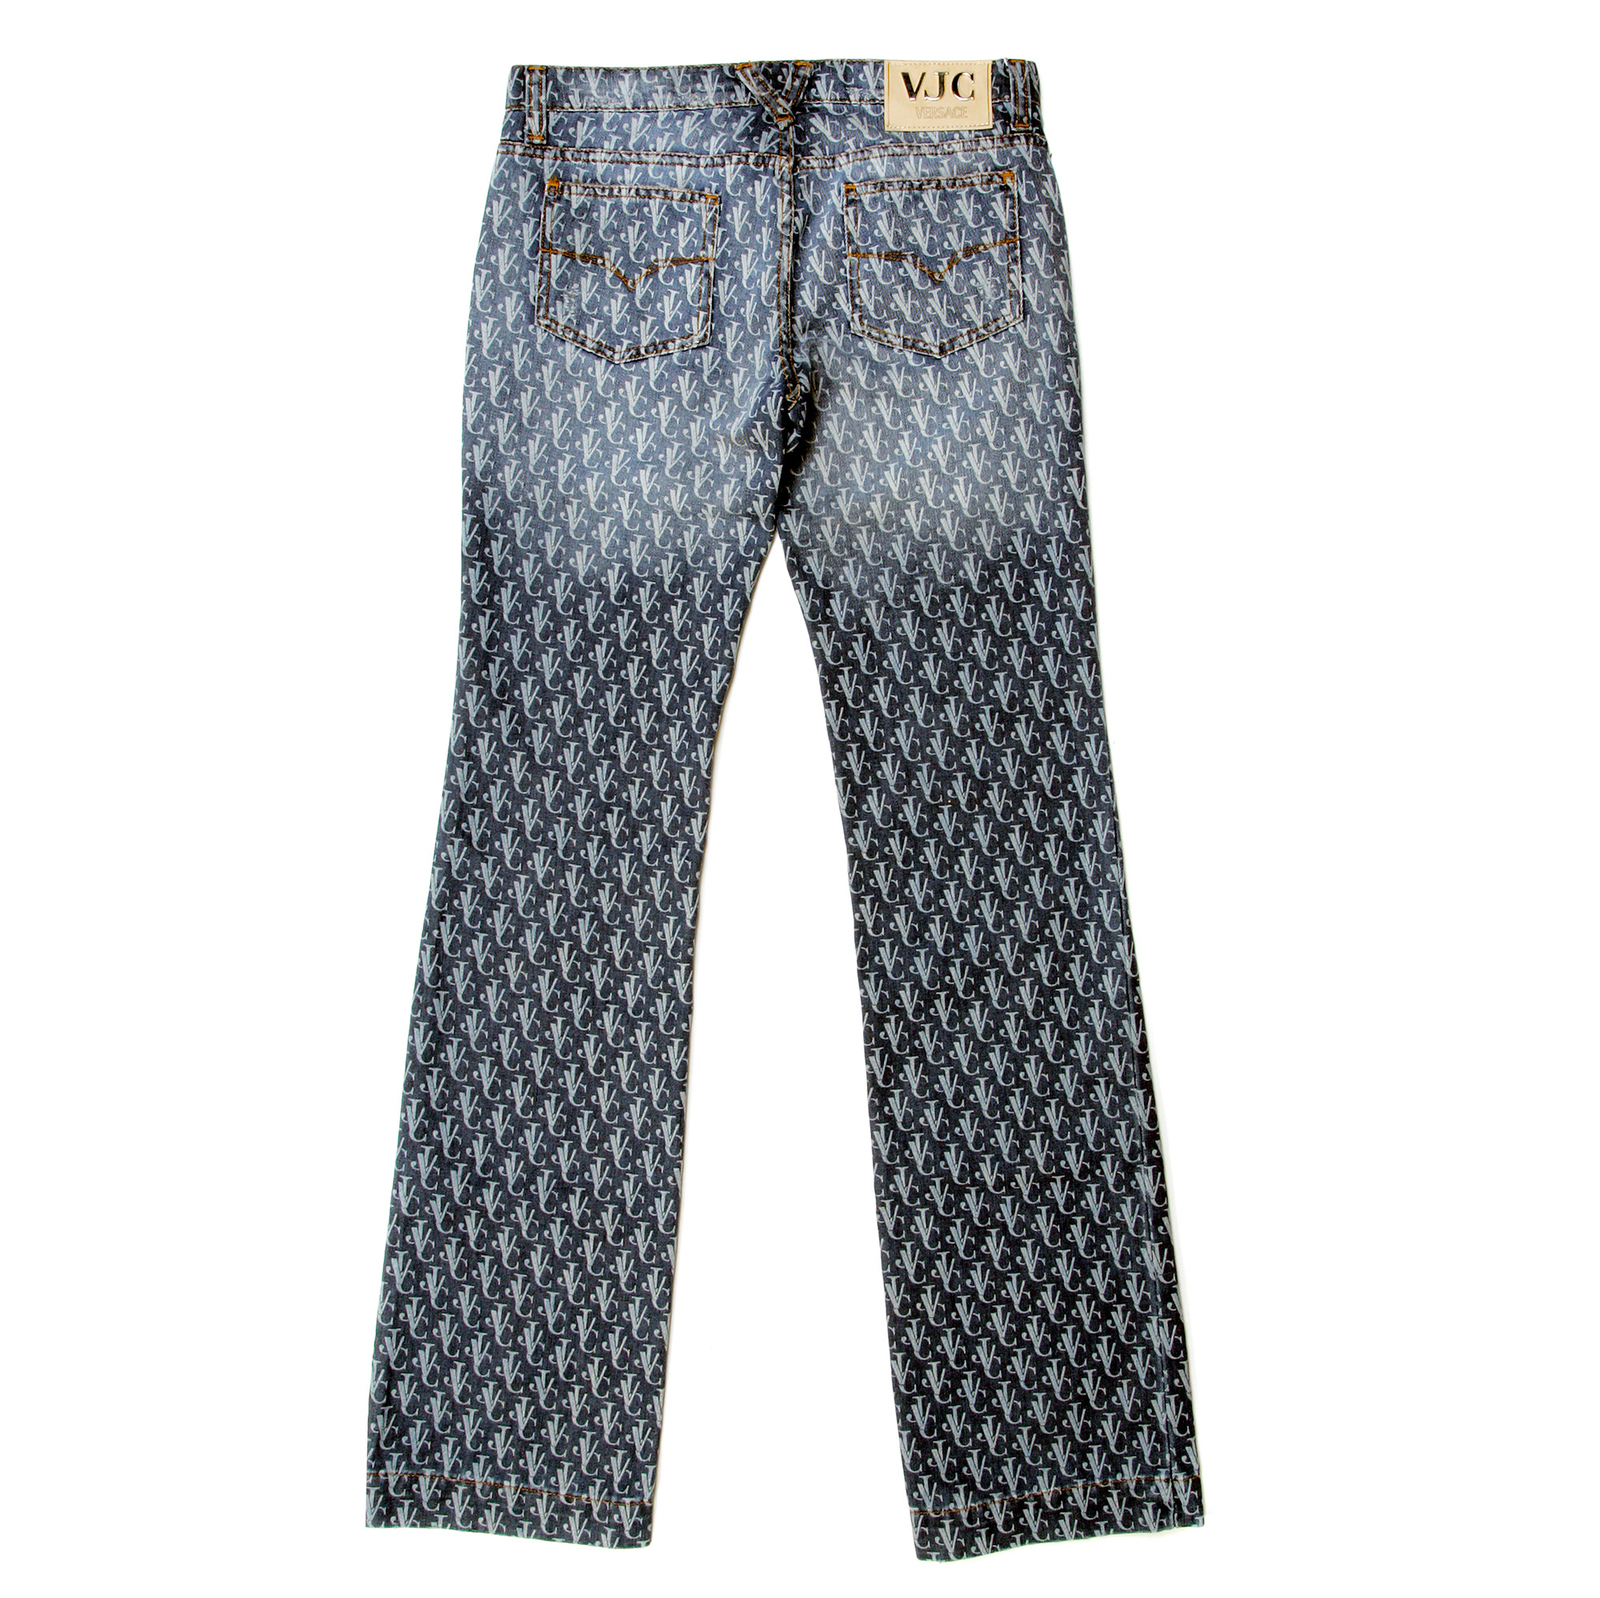 faded stretch skinny jeans - Blue Versace Jeans Couture MVaWbcH